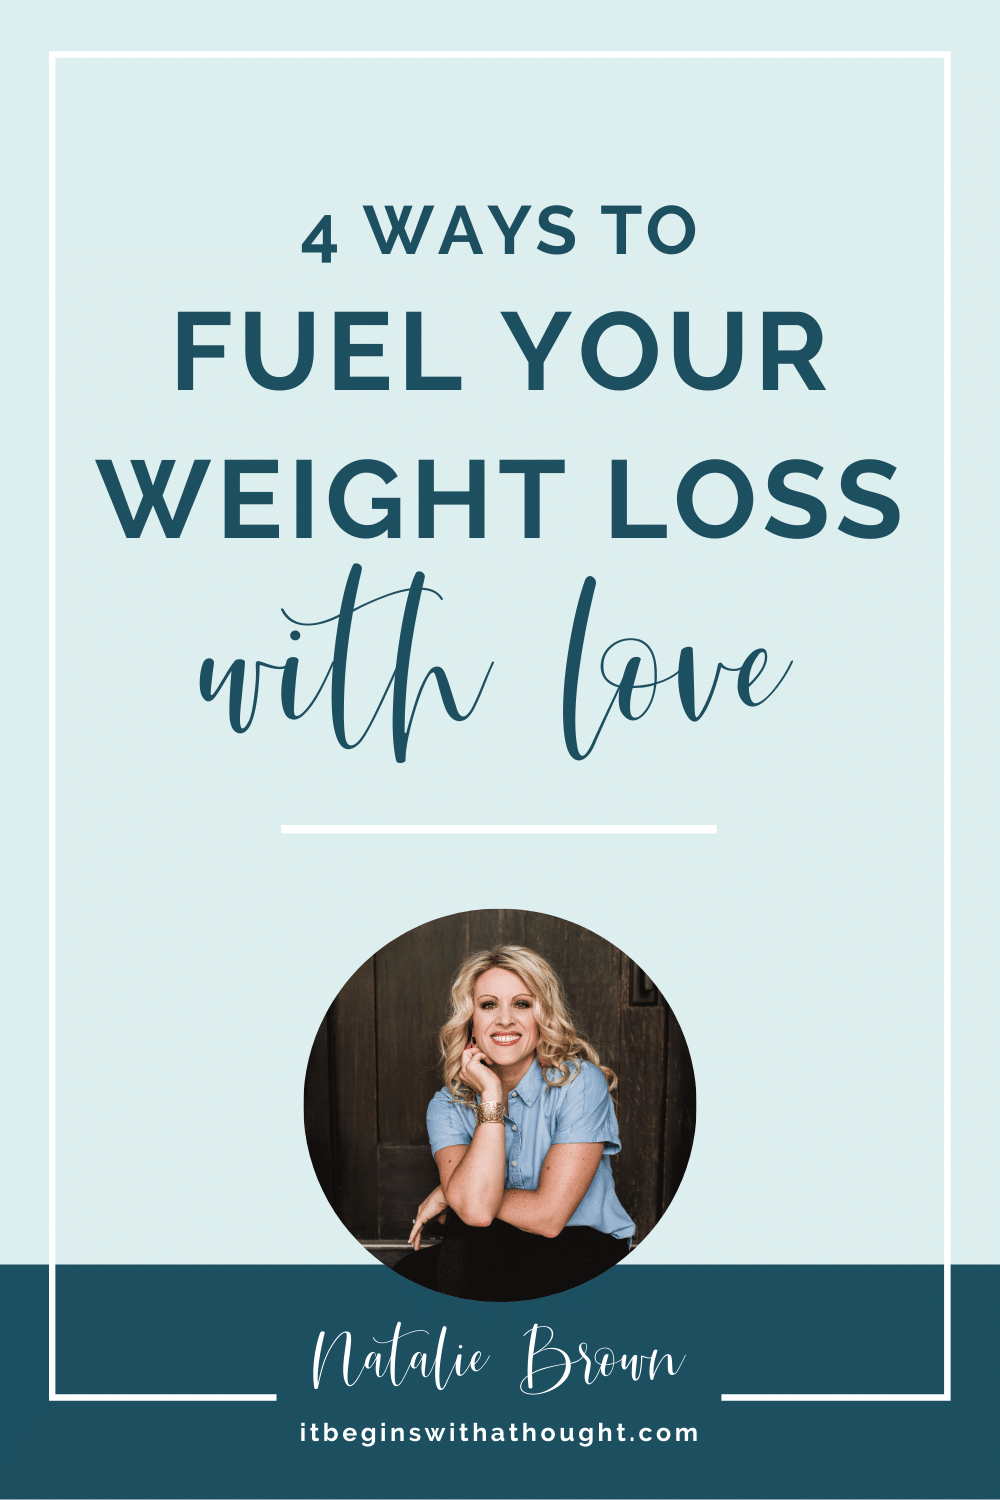 Hate and judgment will never help you permanently lose weight. Here are 4 ways to introduce LOVE into your weight loss instead.